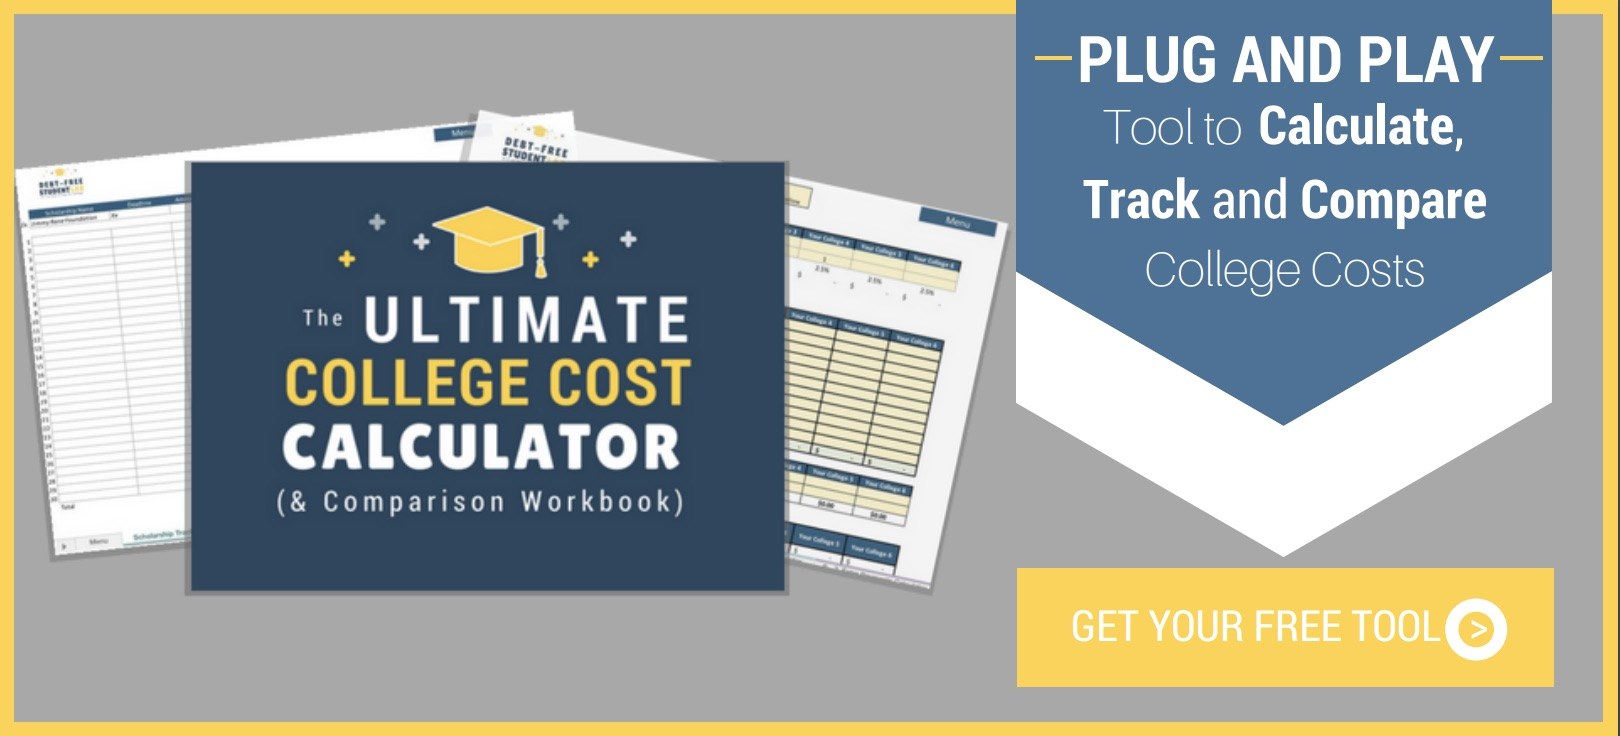 Grab your free College Cost Calculator